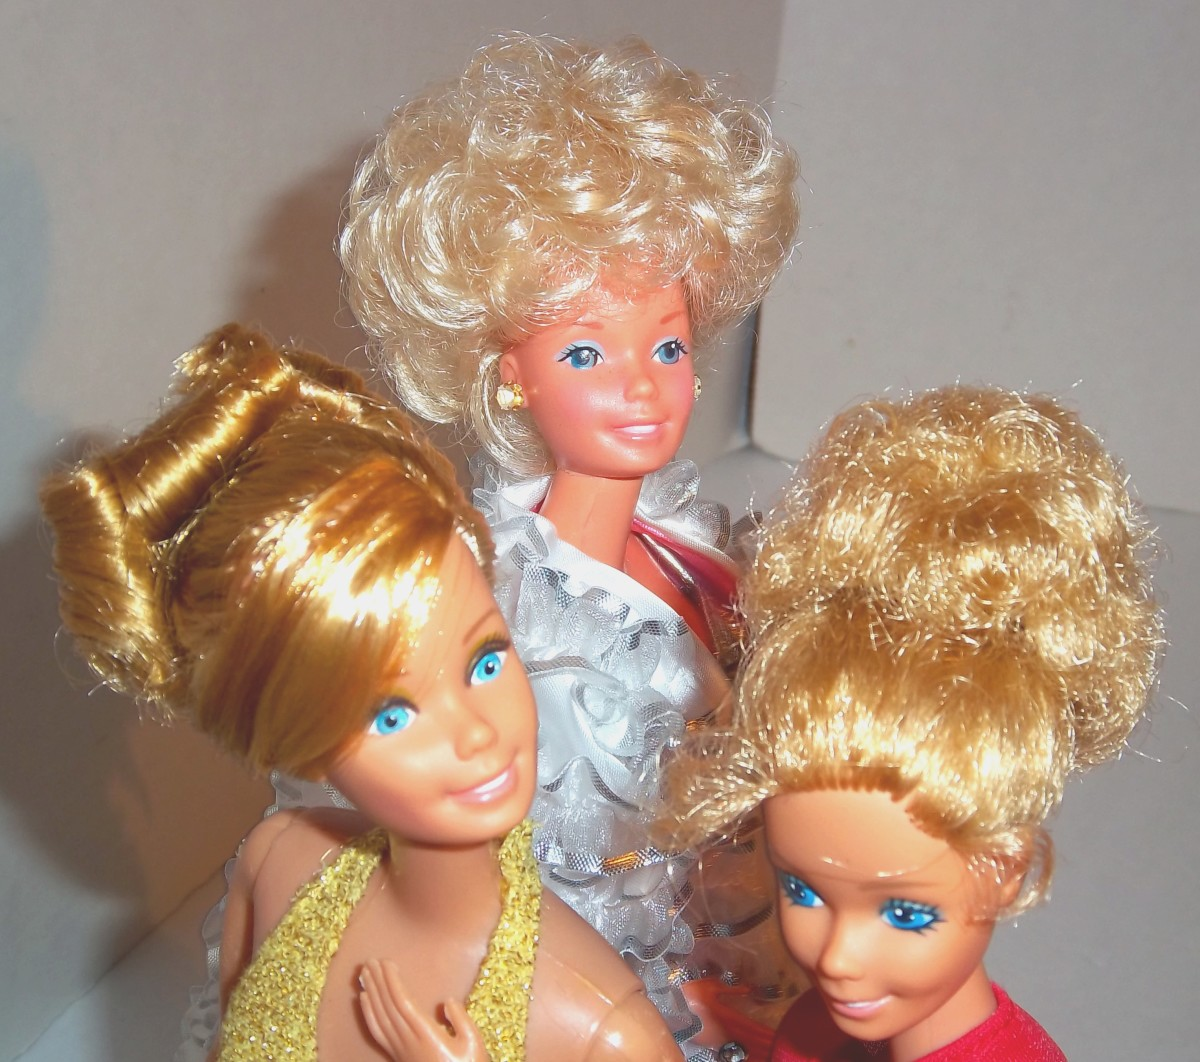 Barbie Doll Hair Styling ideas and tips